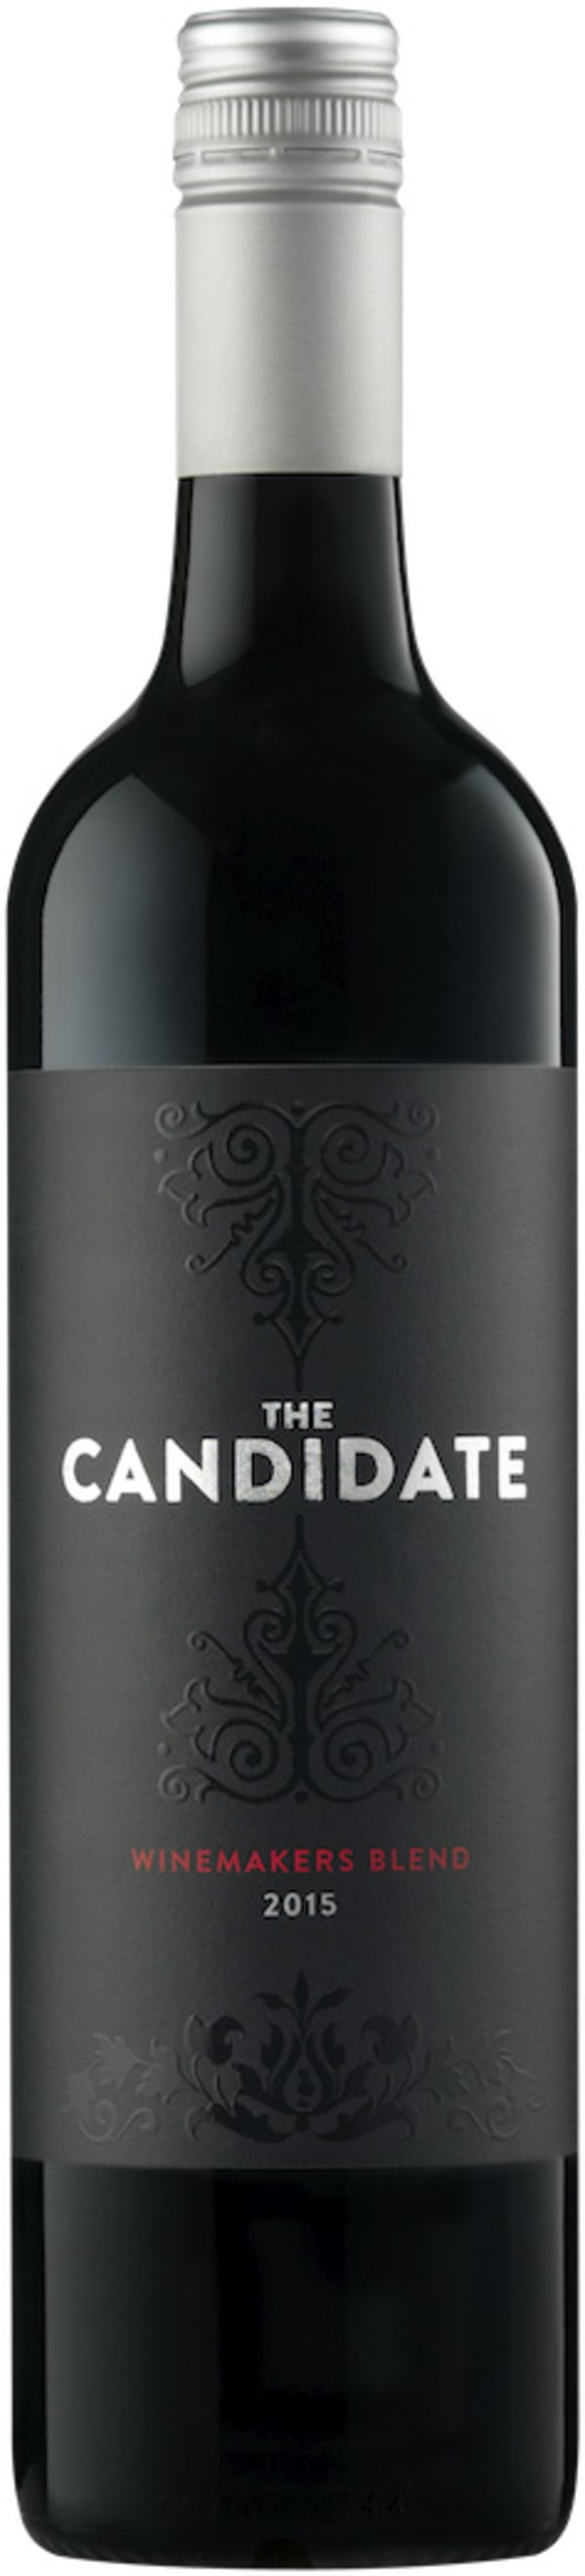 The Candidate Winemakers Blend 2015